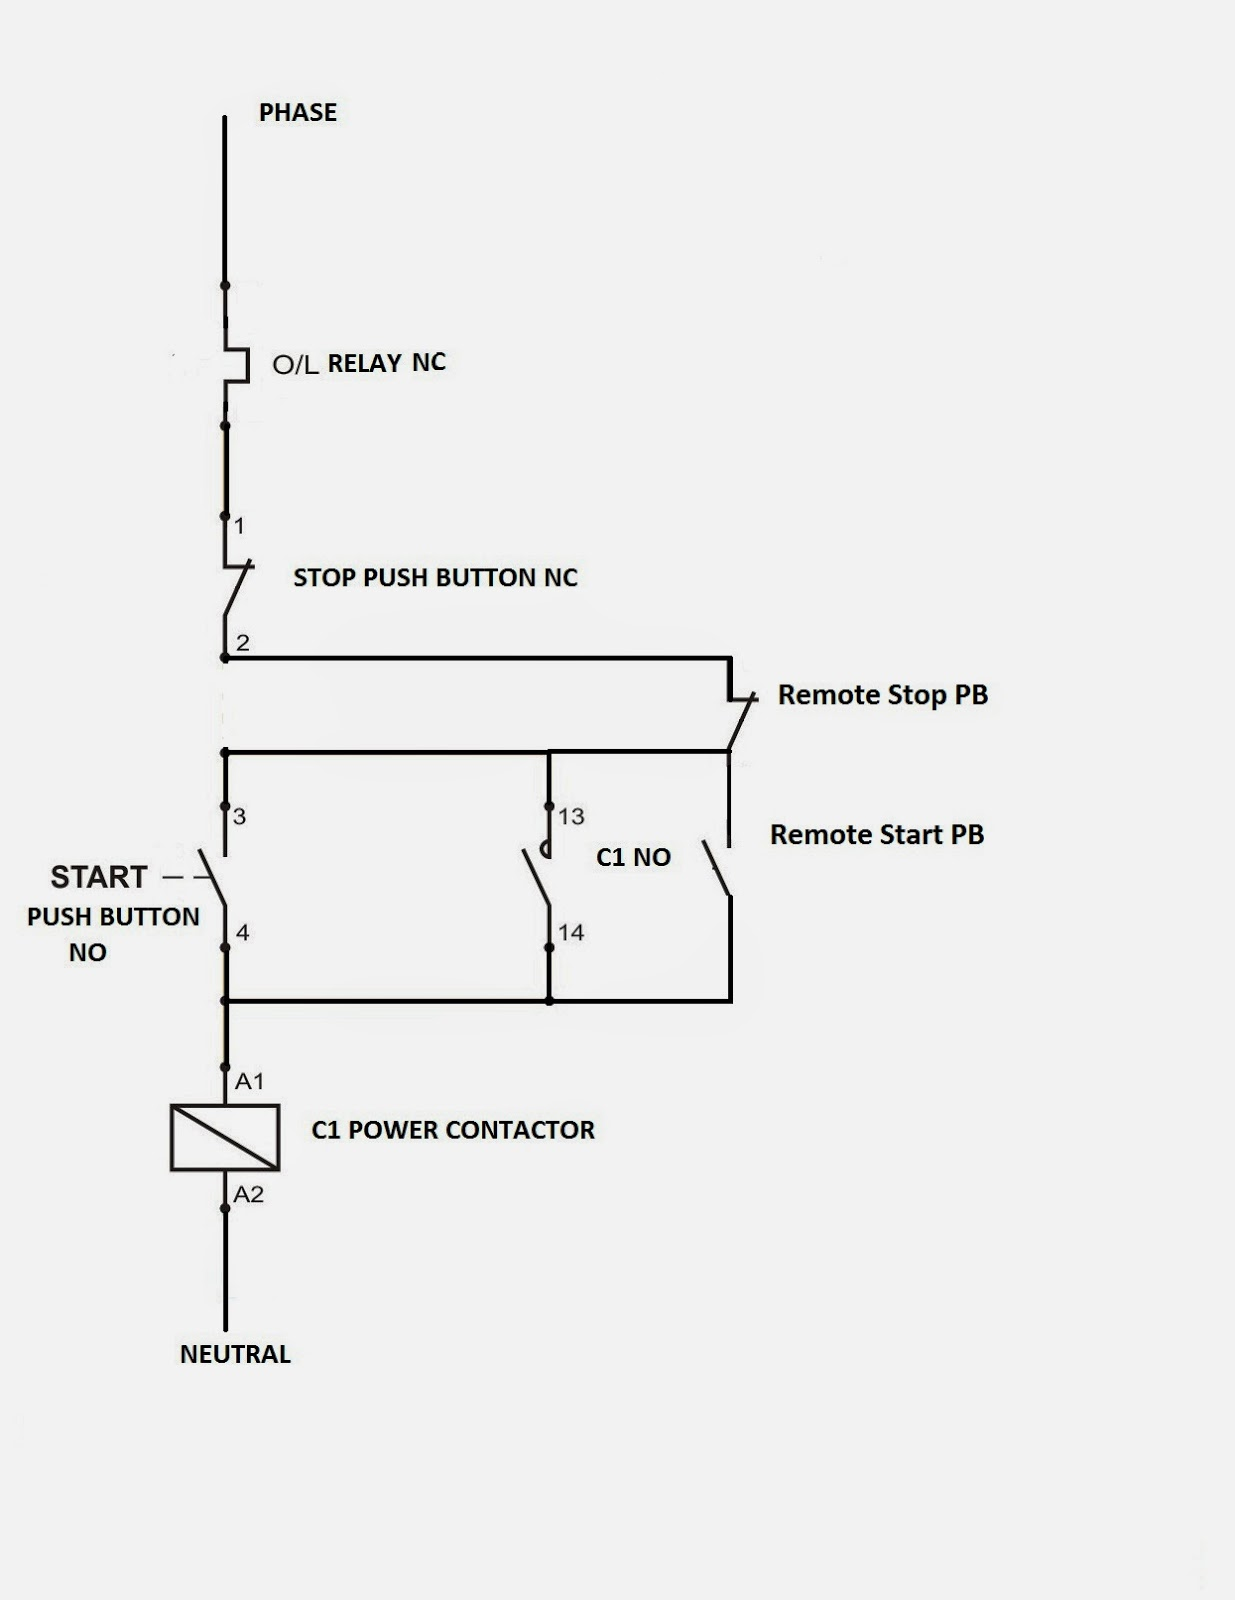 Electrical Standards April 2014 Standard 12v Relay Wiring Dol Starter With Remote Circuit